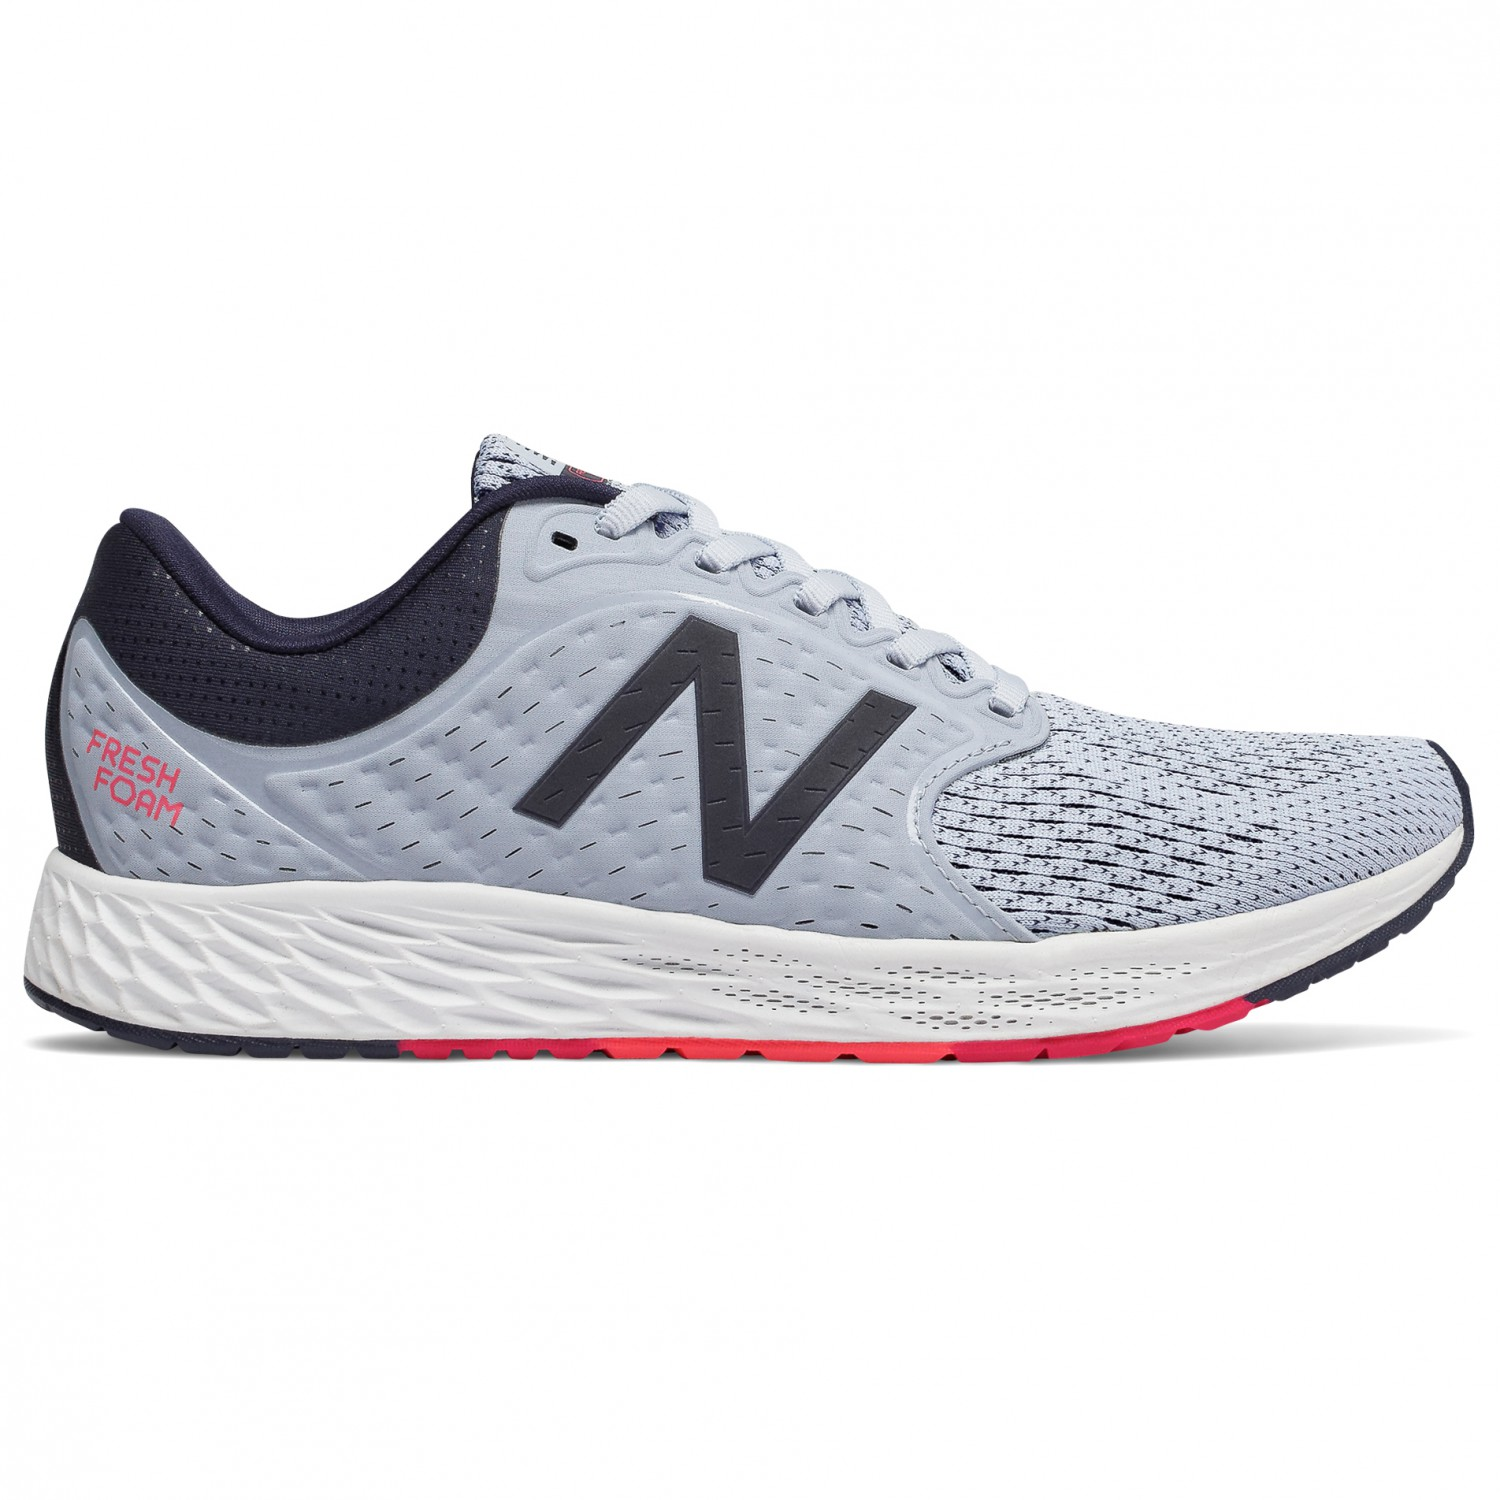 New Balance Fresh Foam Zante V4 - Running Shoes Women's